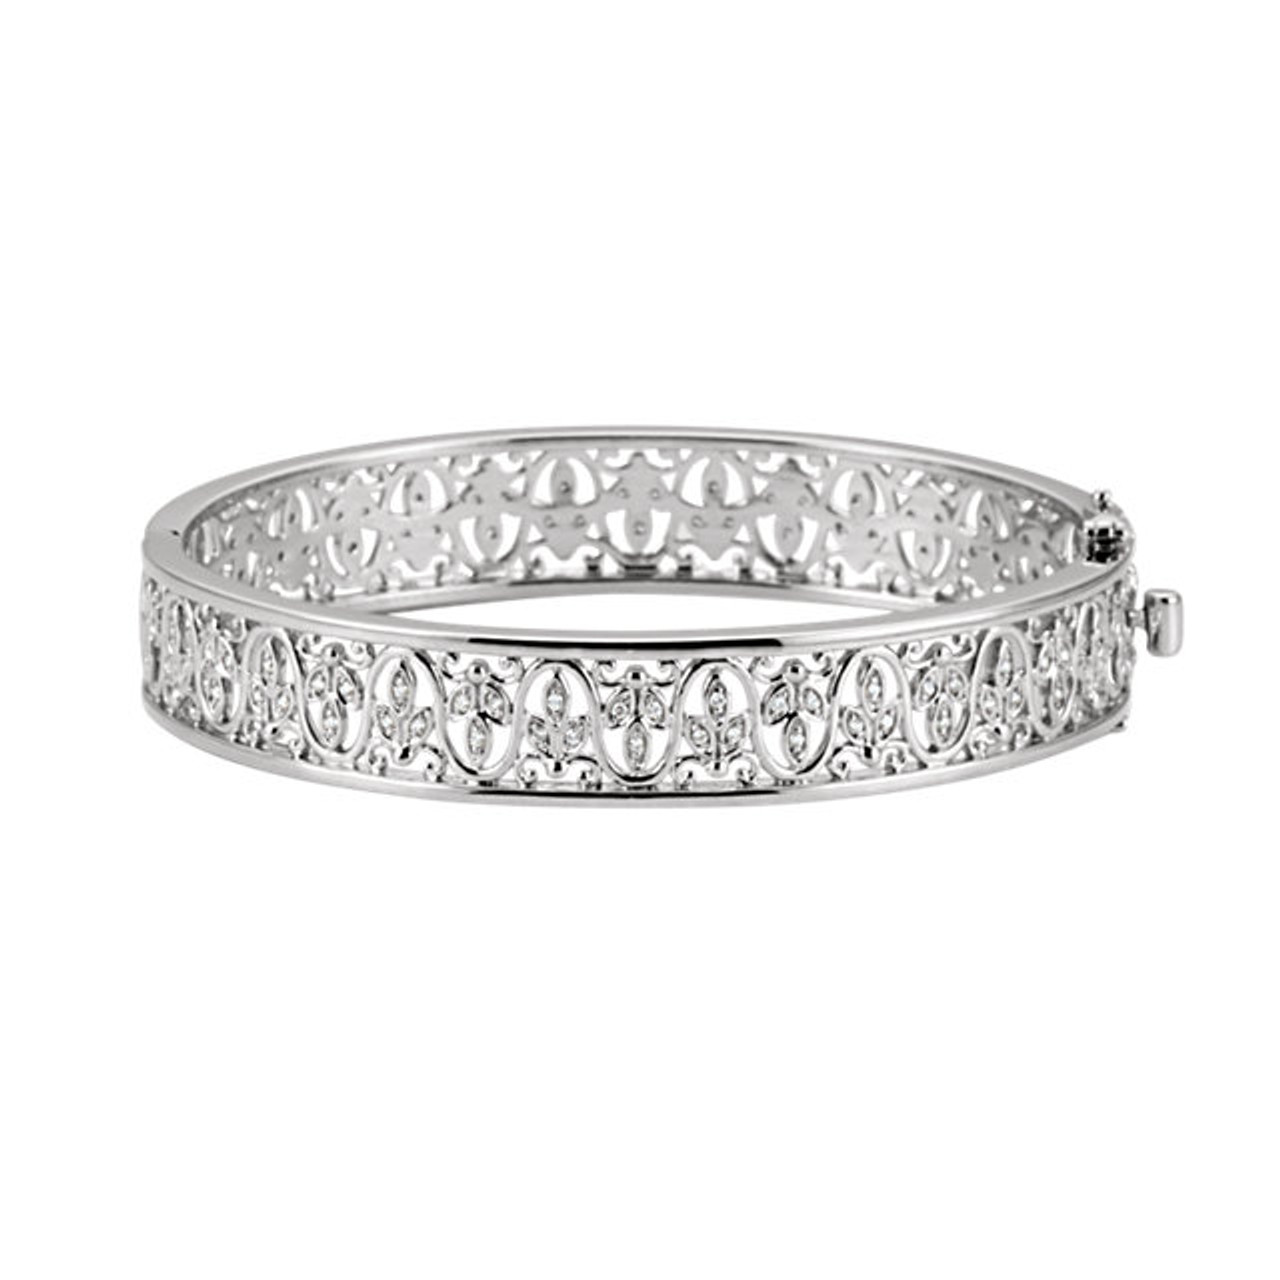 eternity india at in price bangles best online buy wear daily diamond bangle jewelslane